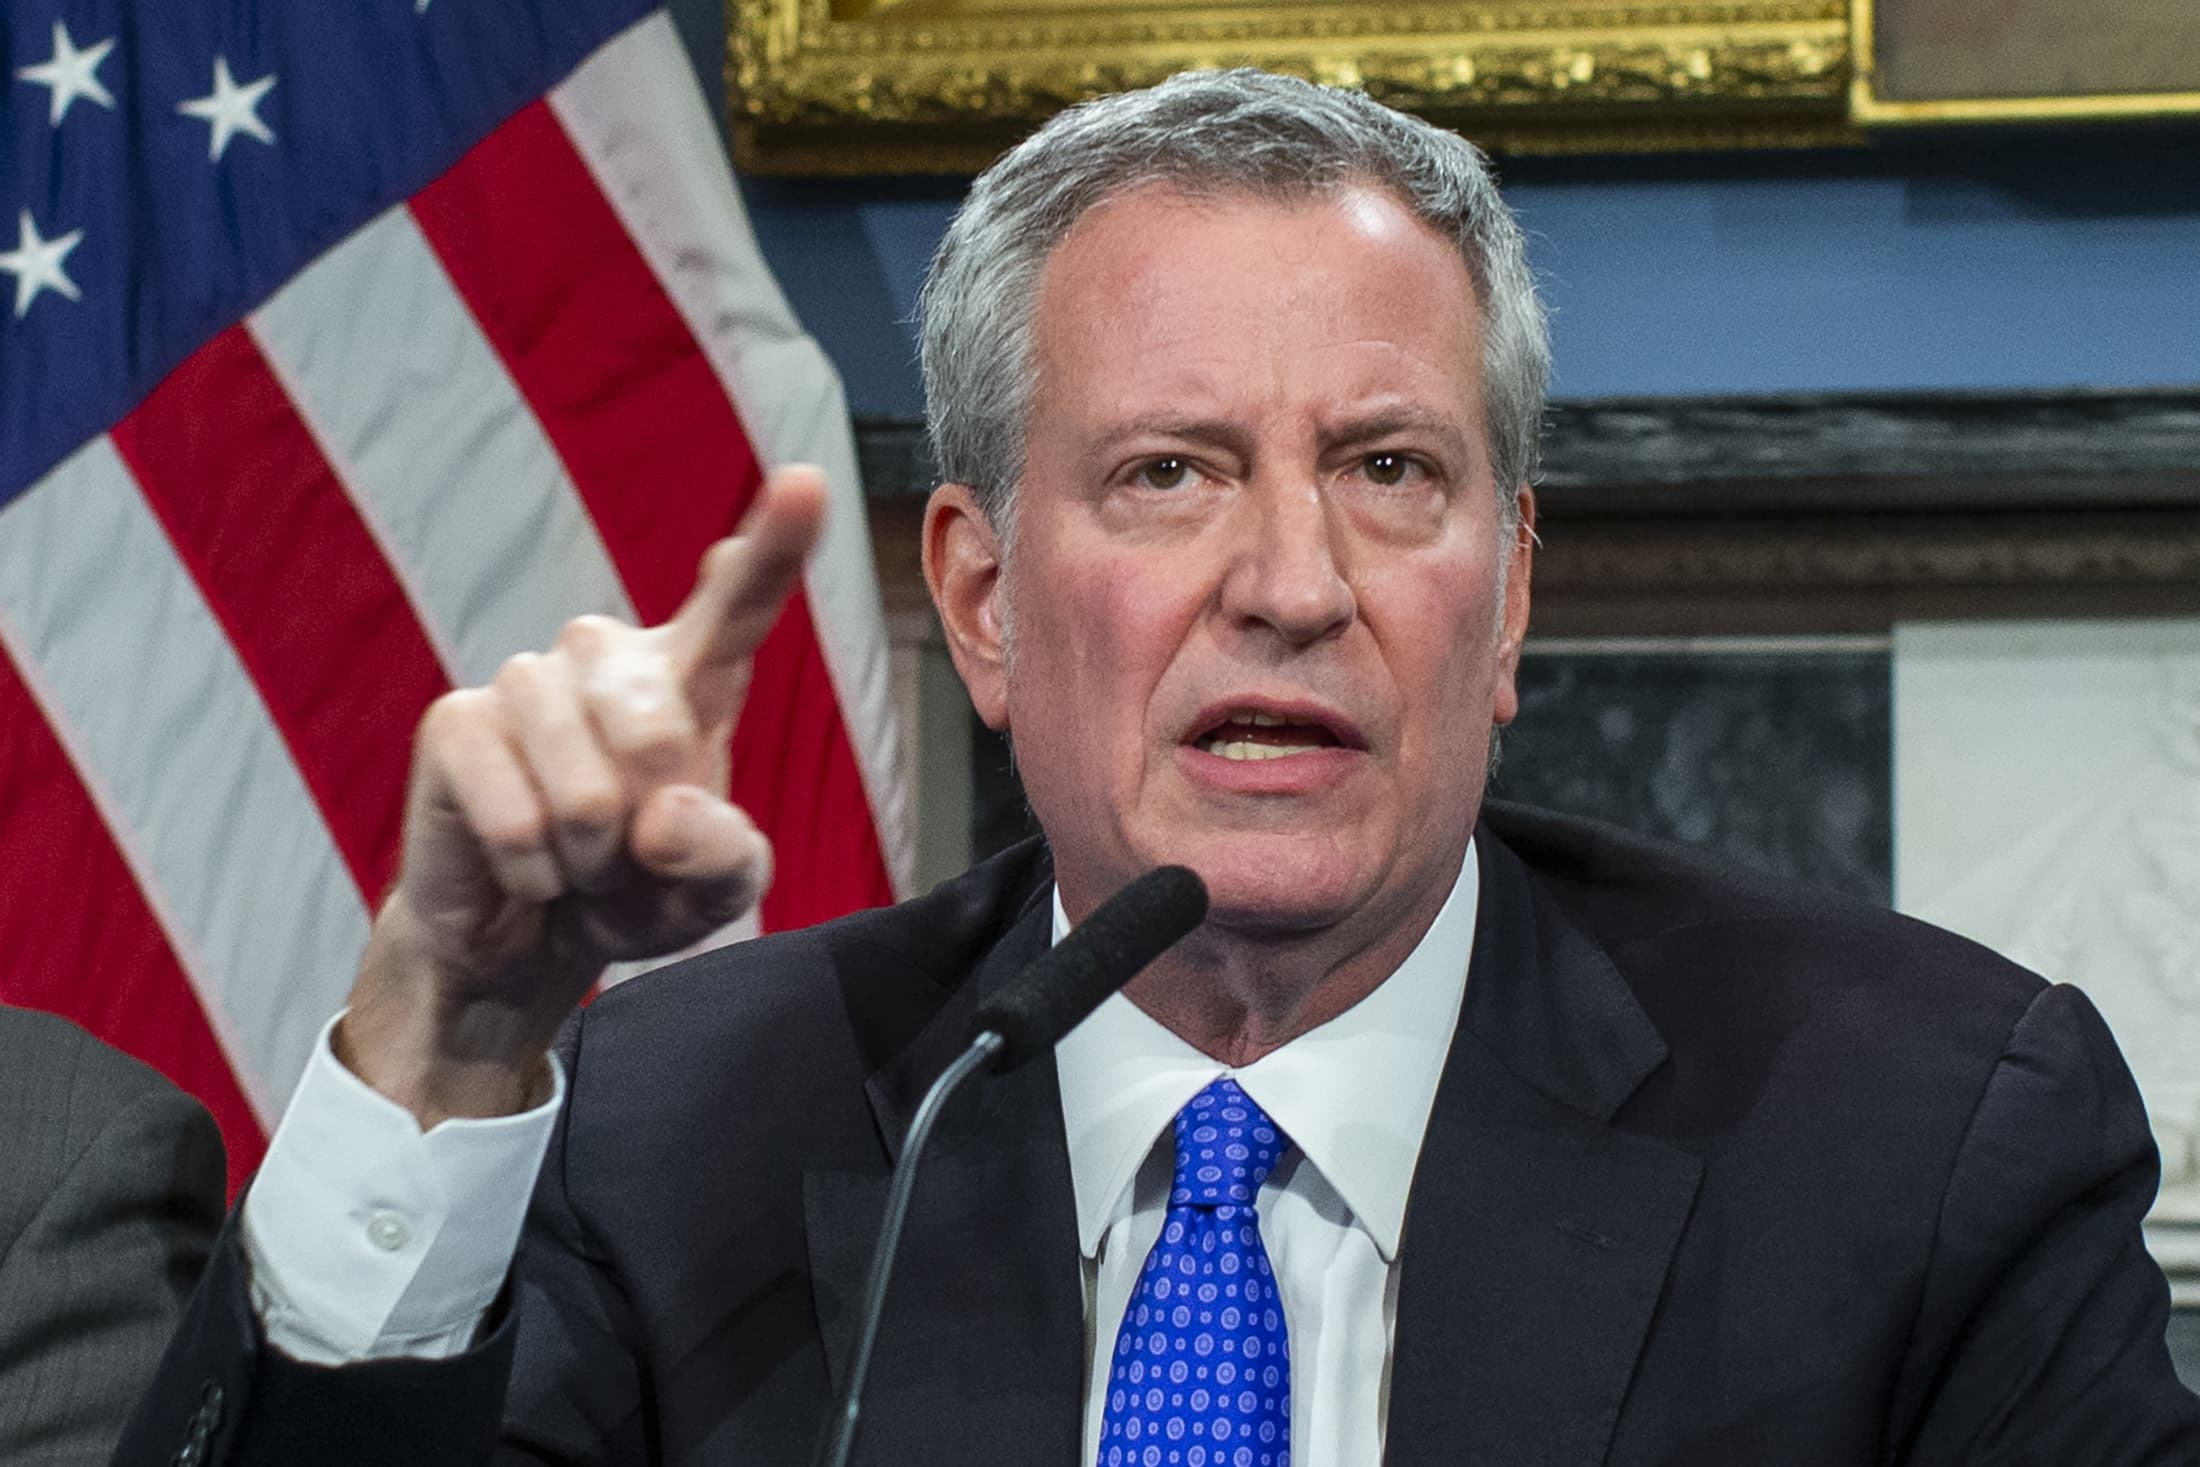 New York City will buy 100,000 test kits per week from mix of local and Indiana contractors